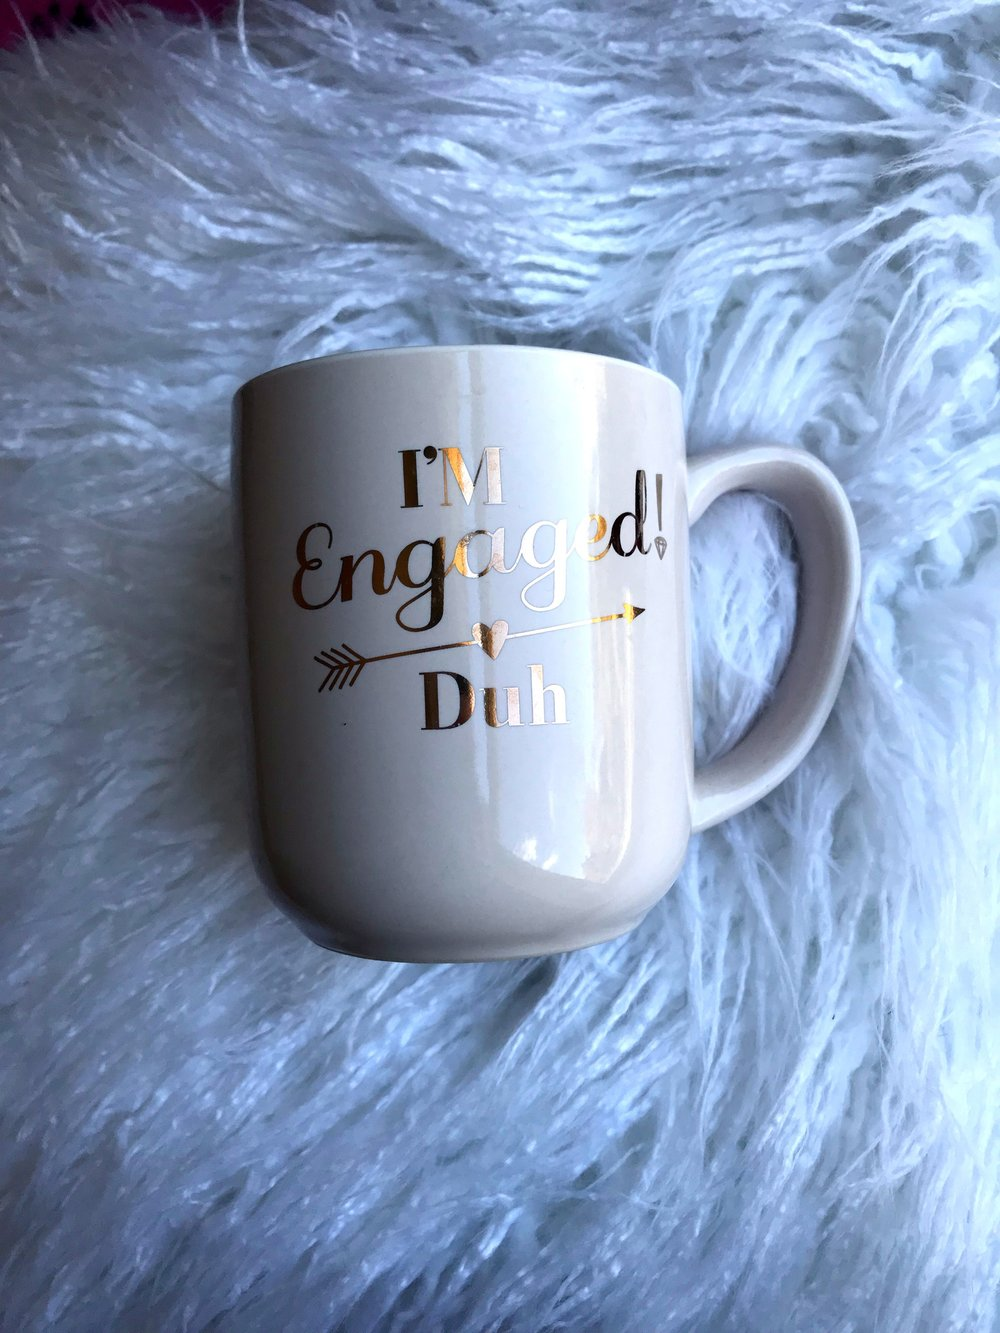 An Engagement Mug - Let's face it, once you get engaged you want everyone to know :) This mug just made me happier, I would drink some tea during planning and then get distracted by my new shiny ring. I got mine from TJ Maxx, but lots of stores carry them now.